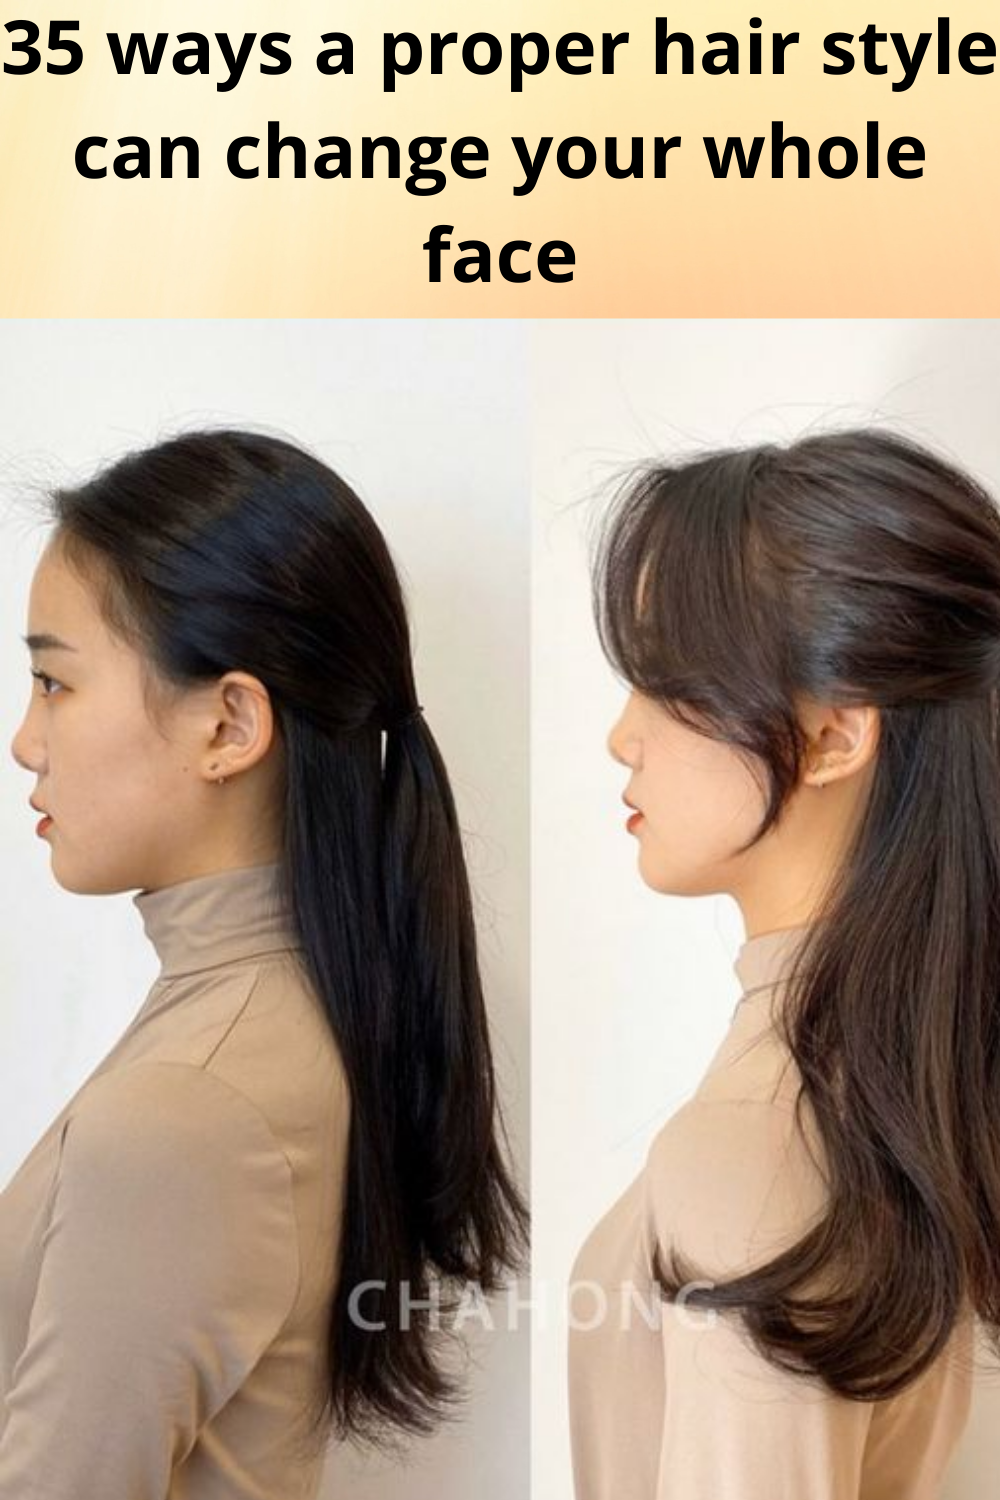 35 ways a proper hair style can change your whole